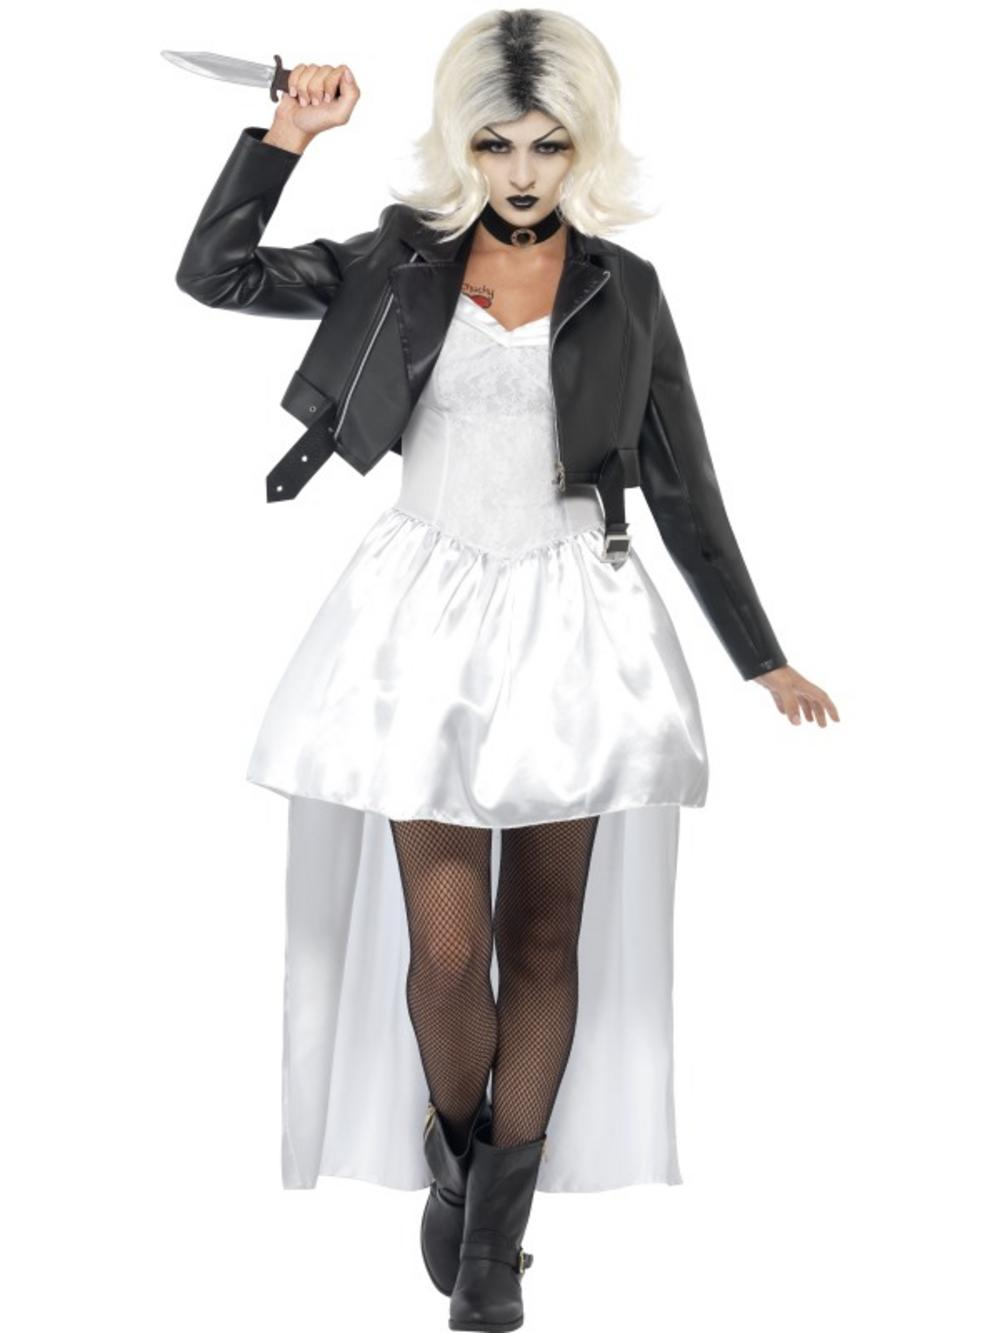 Ladies Bride of Chucky Costume